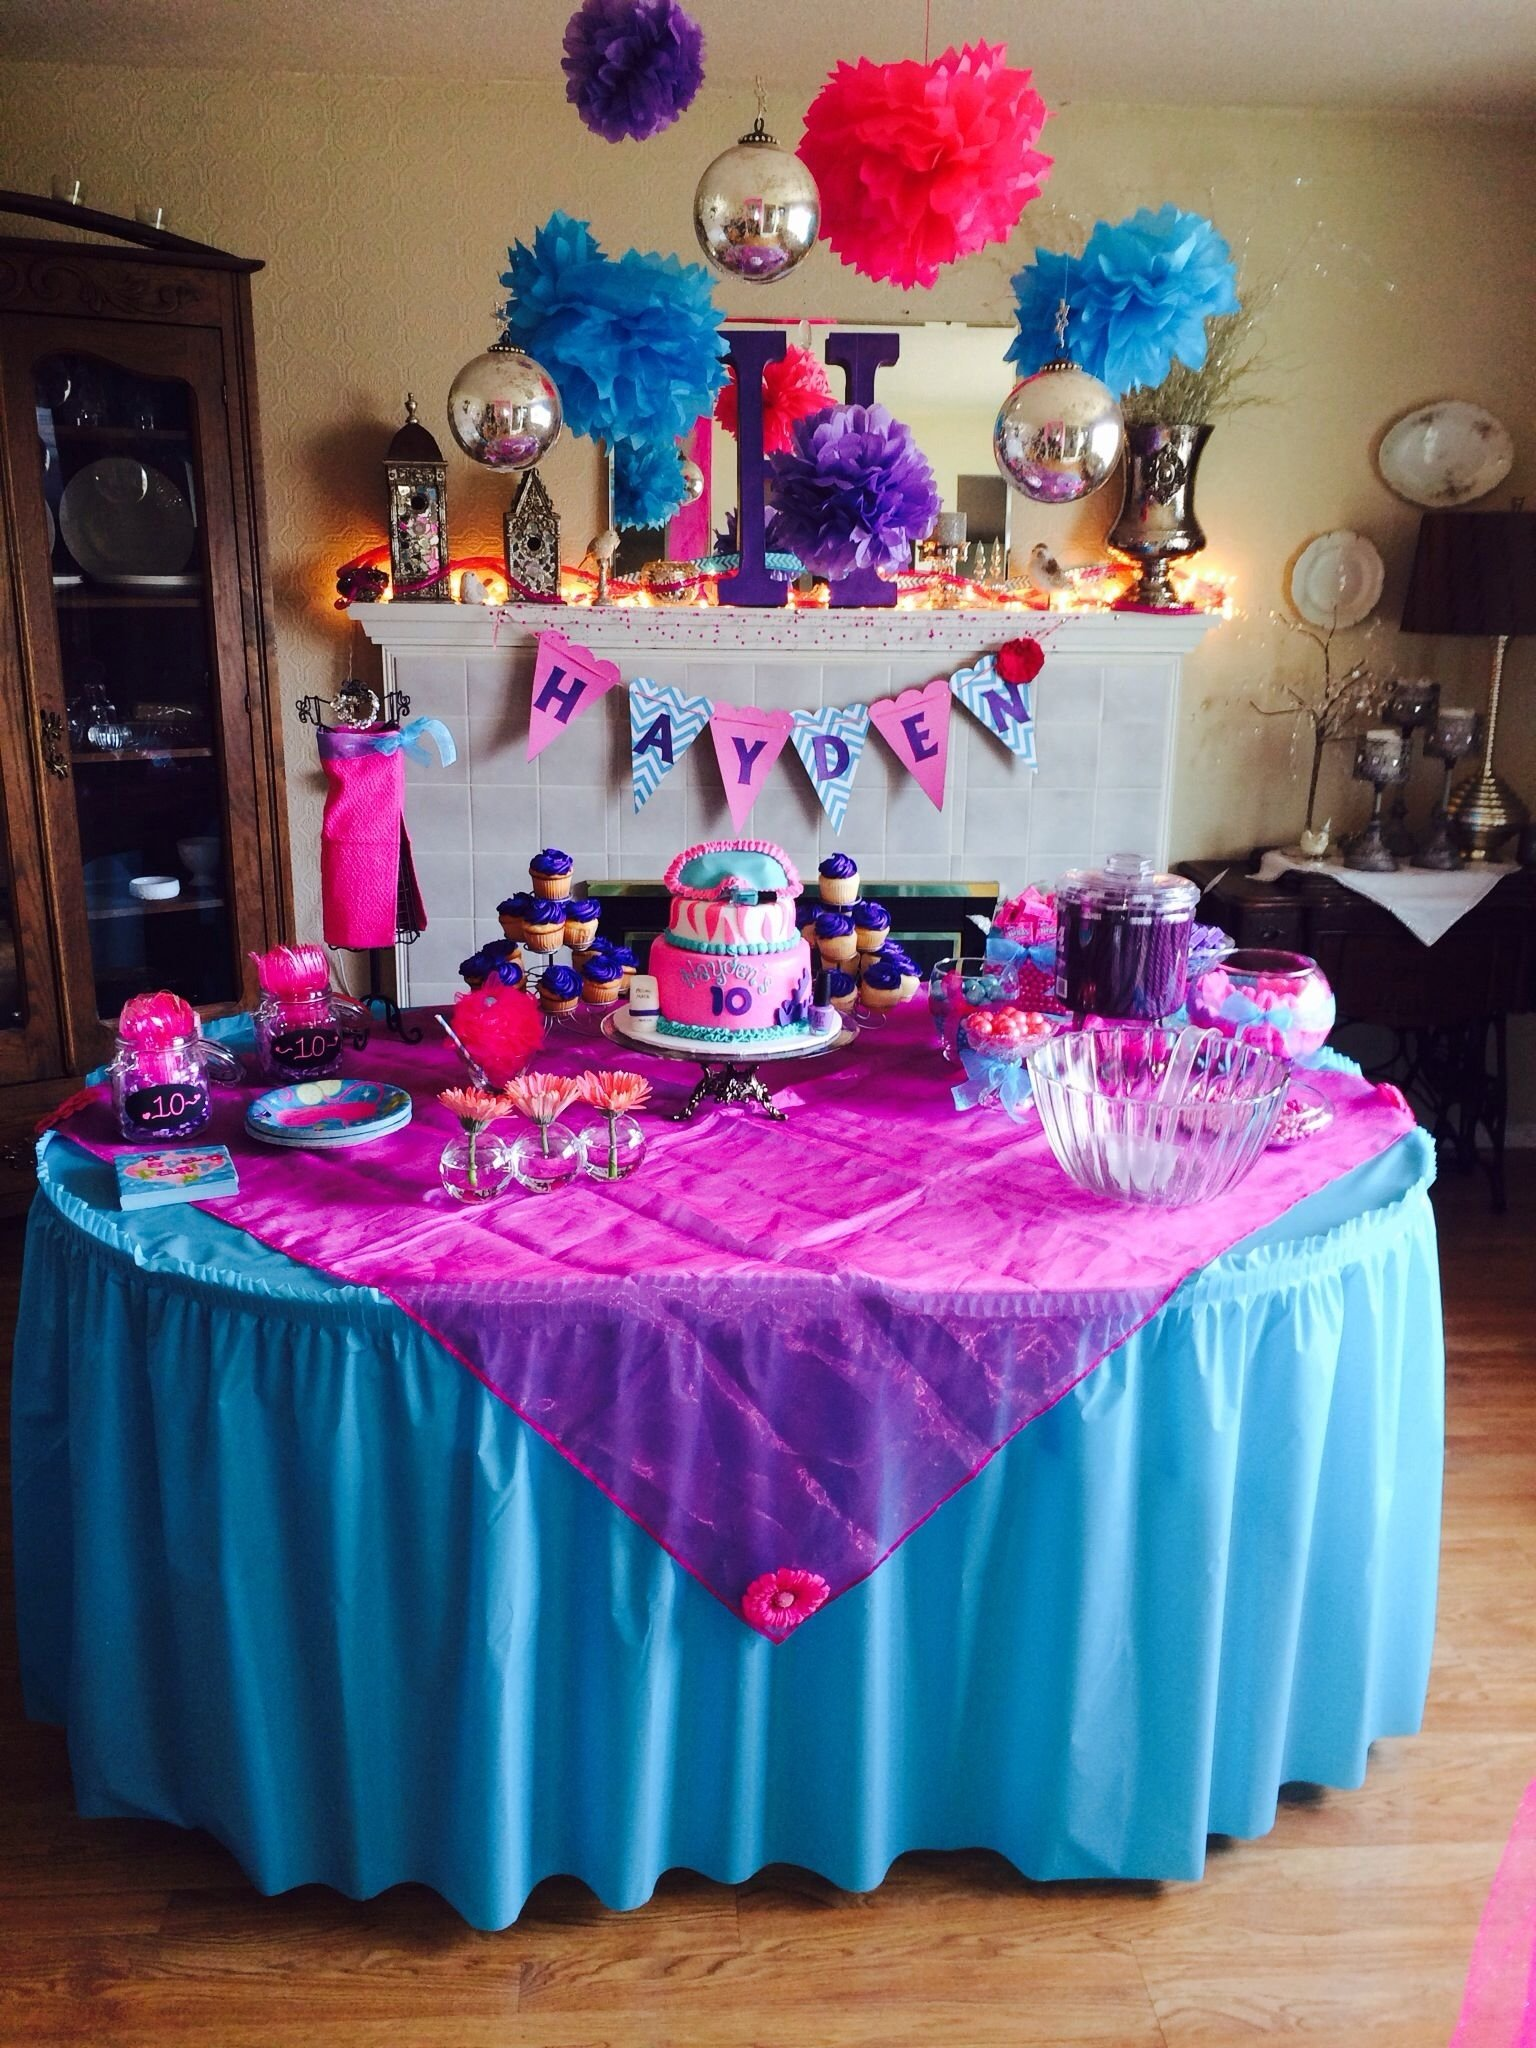 10 Spectacular Birthday Party Ideas For 10 Year Old Girl girls 10th birthday party party ideas pinterest 10th birthday 2 2020